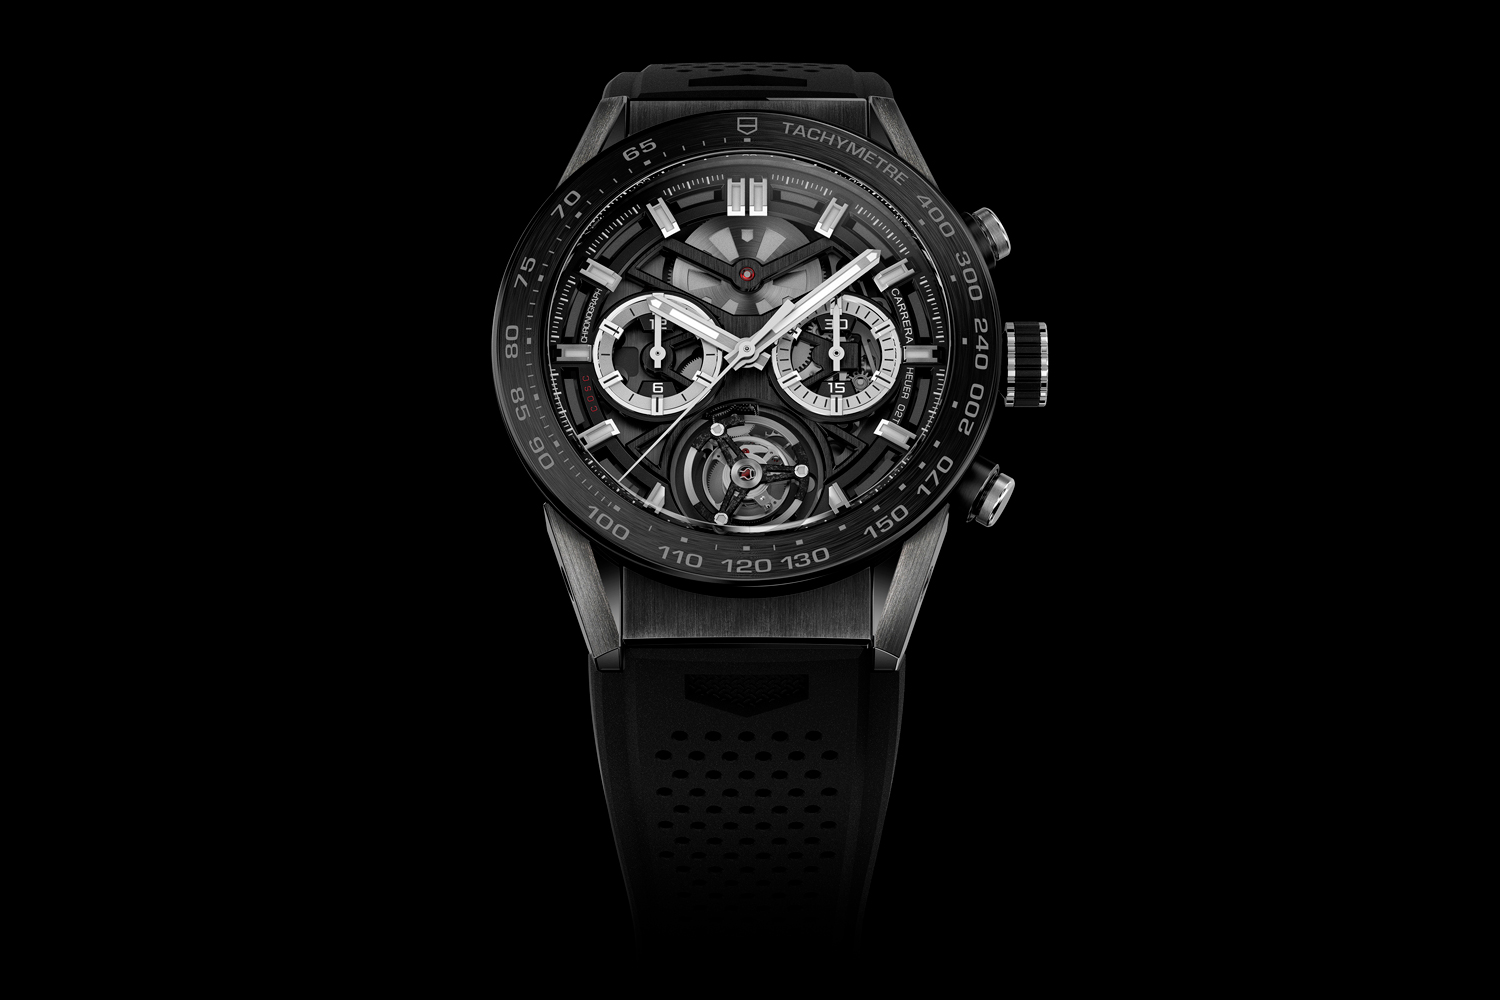 Since its announcement in 2016, the TAG Heuer Carrera Heuer 02 Tourbillon still holds the title of the world's most accessibly priced tourbillon chronograph replete with COSC certification